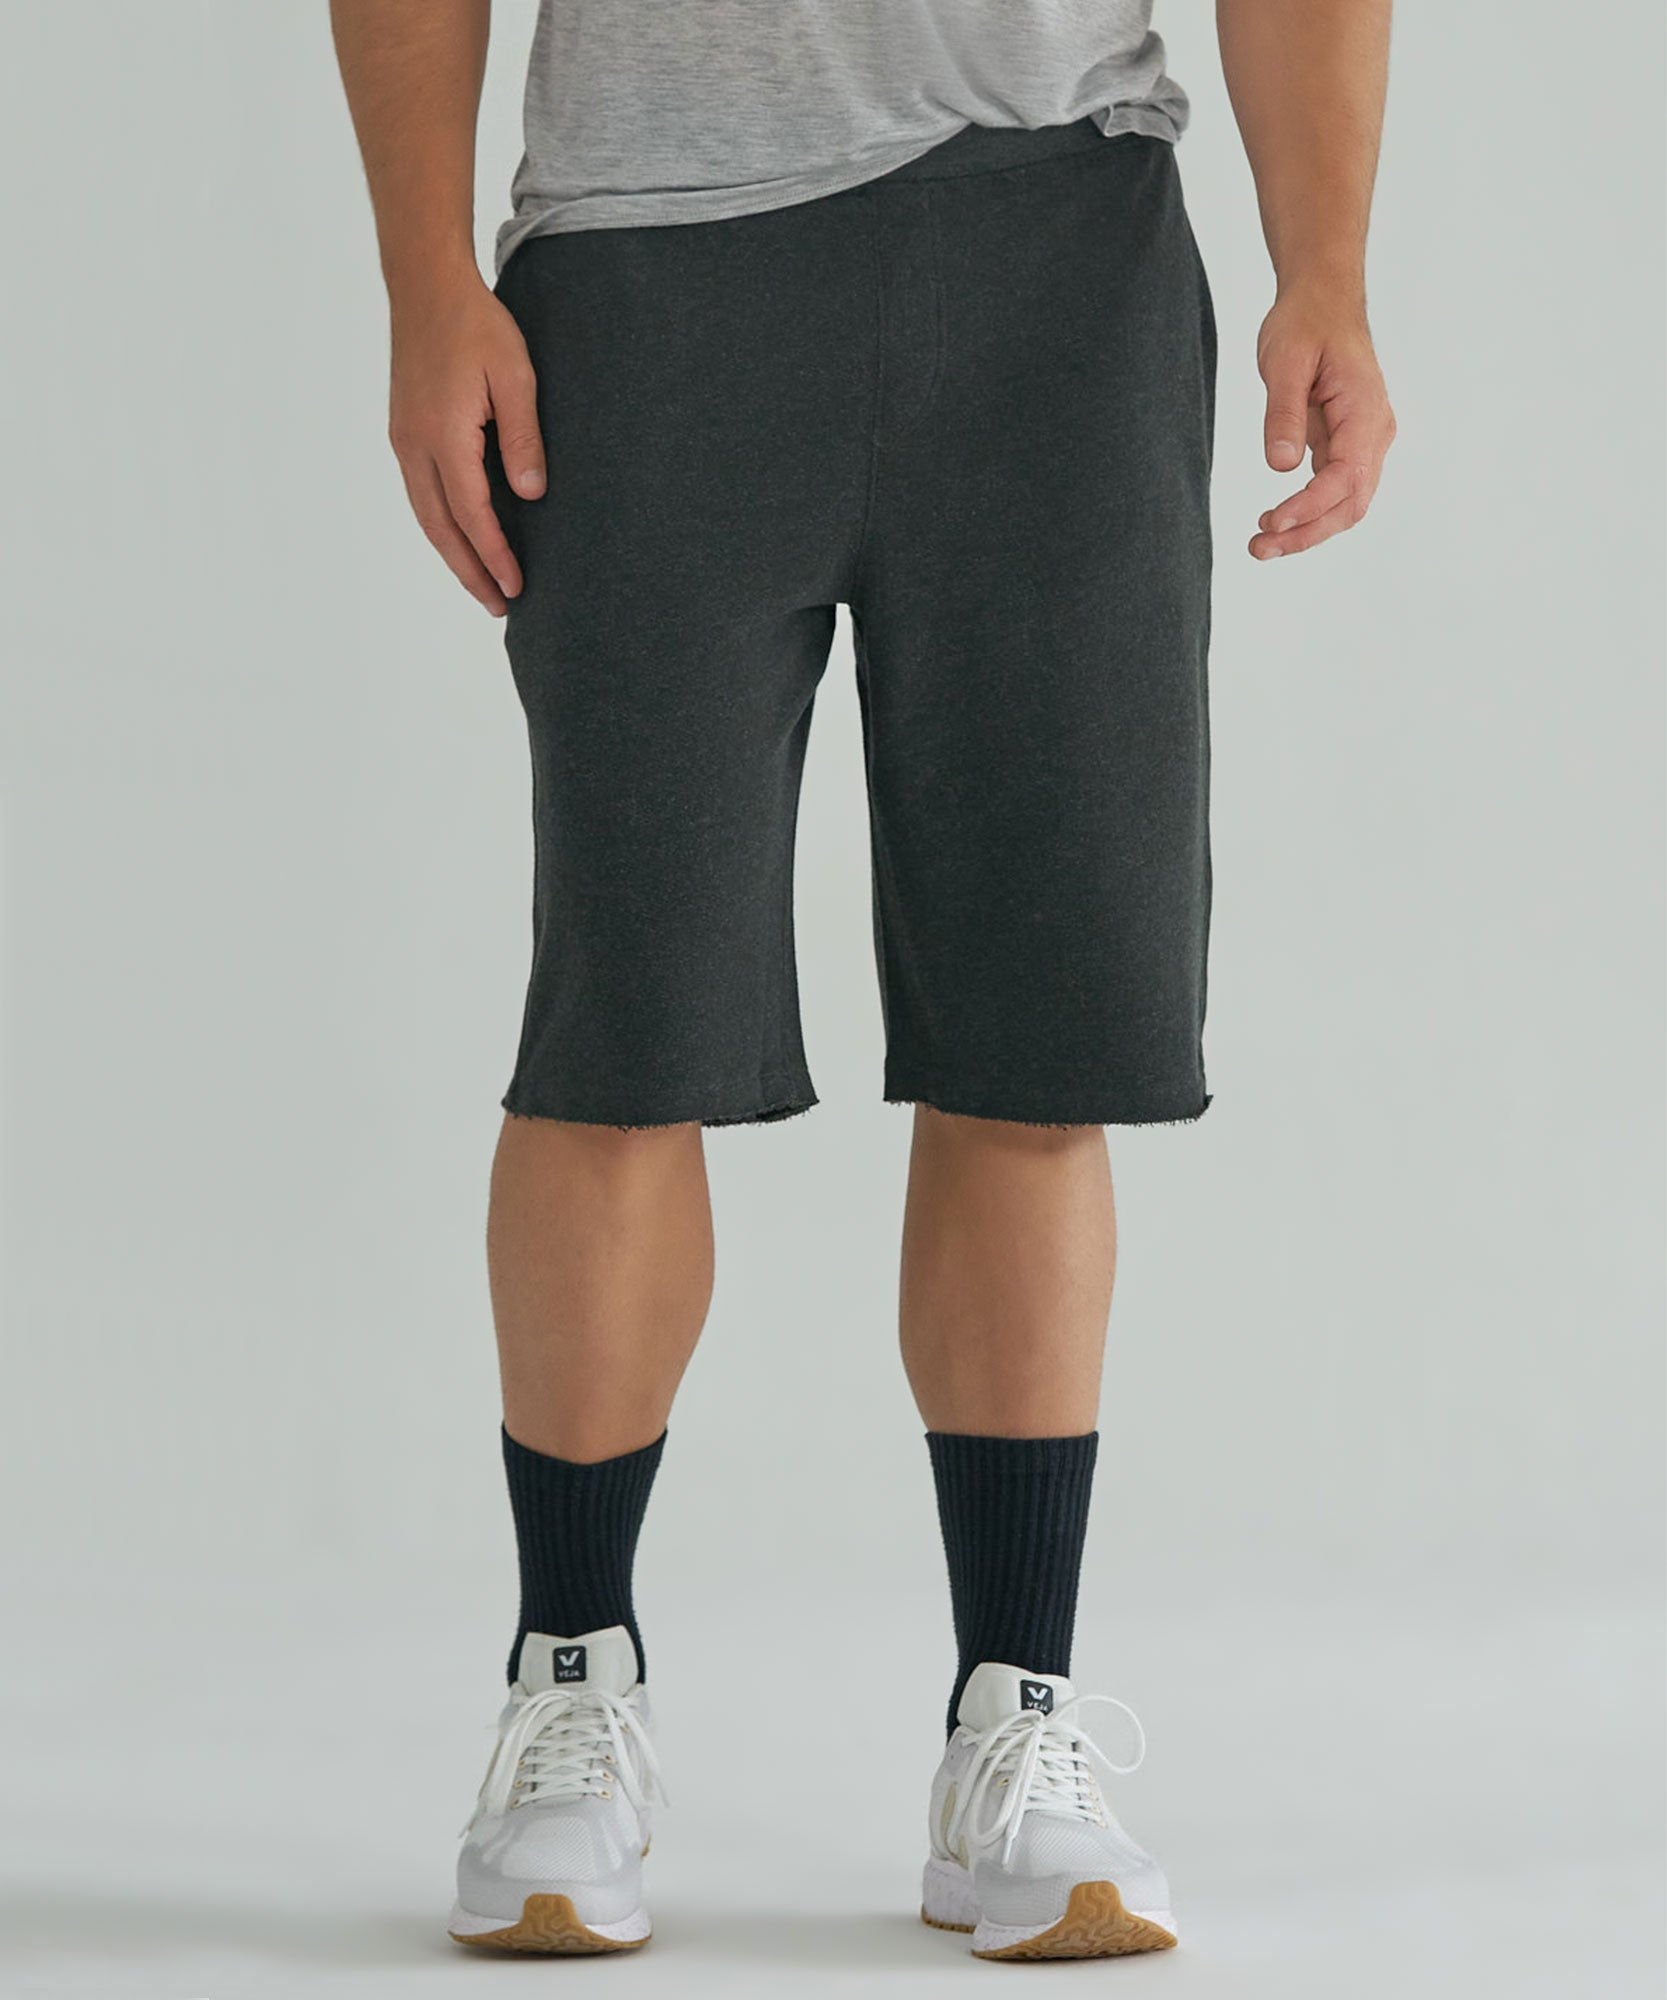 Heather Charcoal Raw Hem French Terry Pull-On Shorts - Men's Luxe Loungewear by ATM Anthony Thomas Melillo